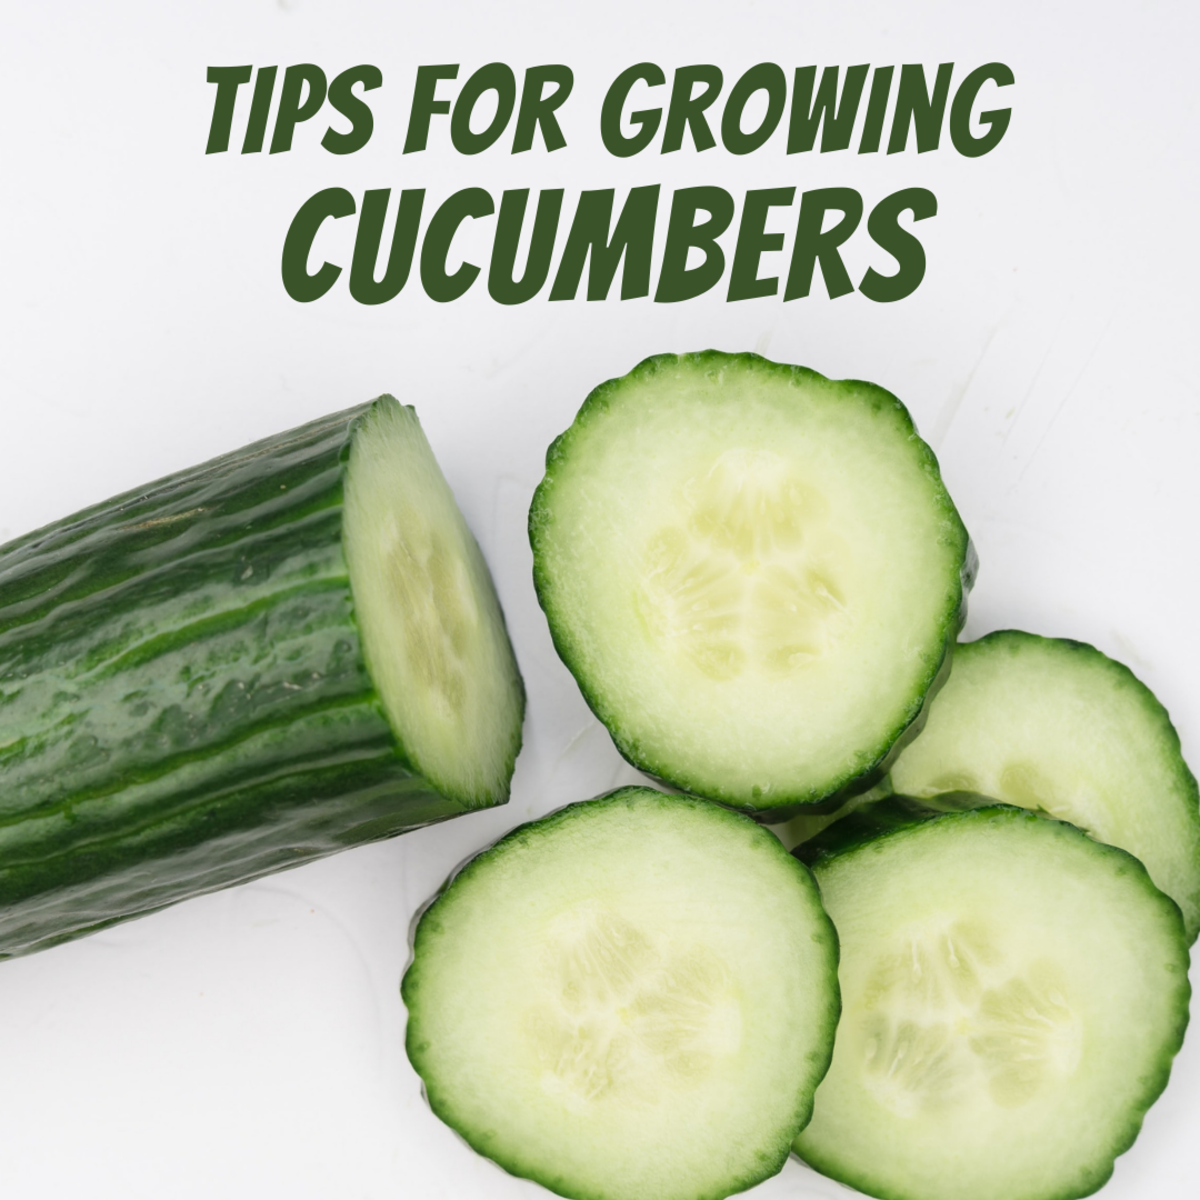 Tips and tricks for growing cucumbers